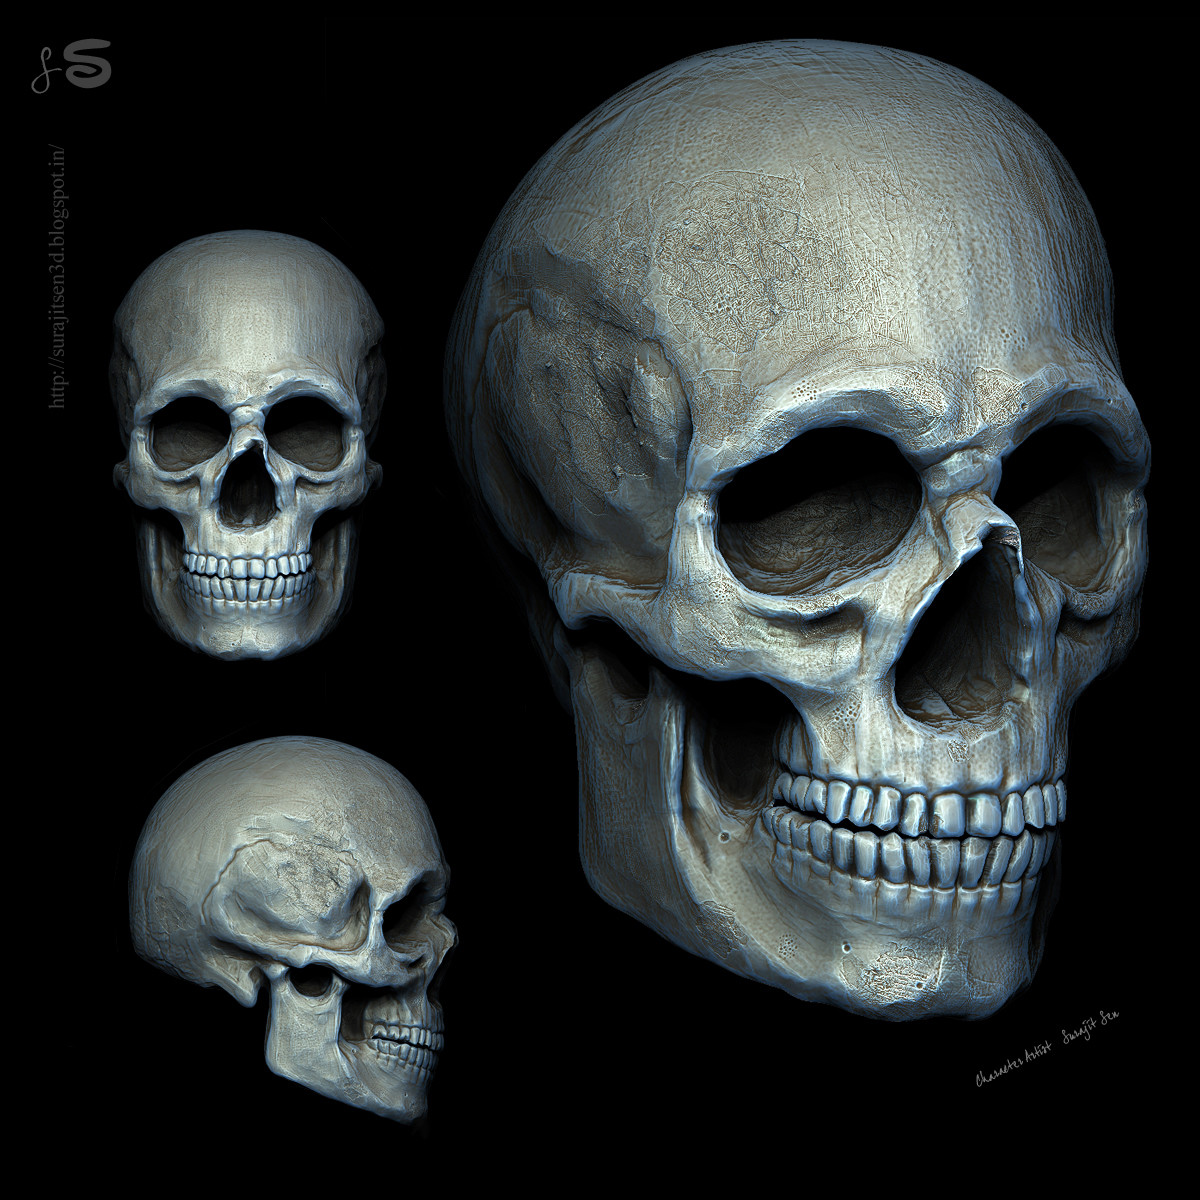 My weekend sculpt  of Human skull study. Wish to share .....:)